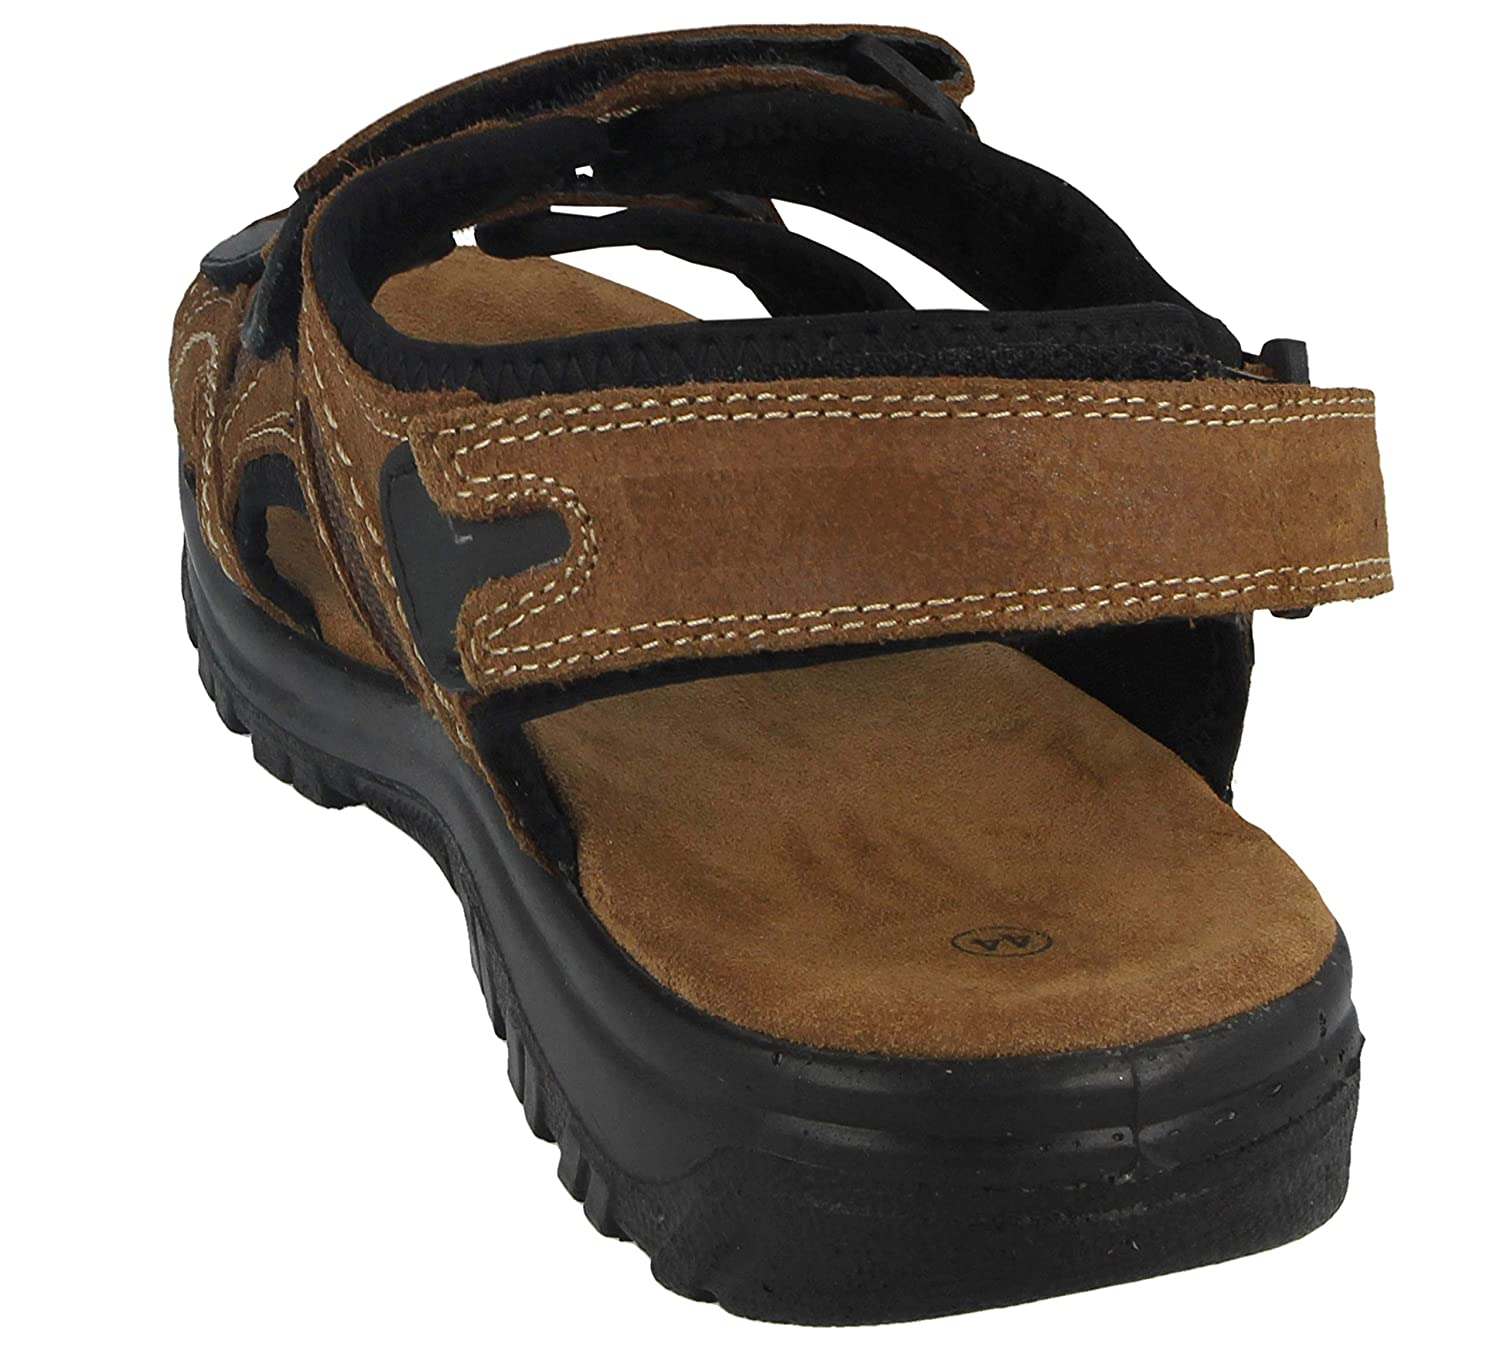 Yinka Shoes Mens Real Leather Brown Adjustable Touch Close Triple Straps Comfort Sports Leisure Summer Sandals Size 6-12